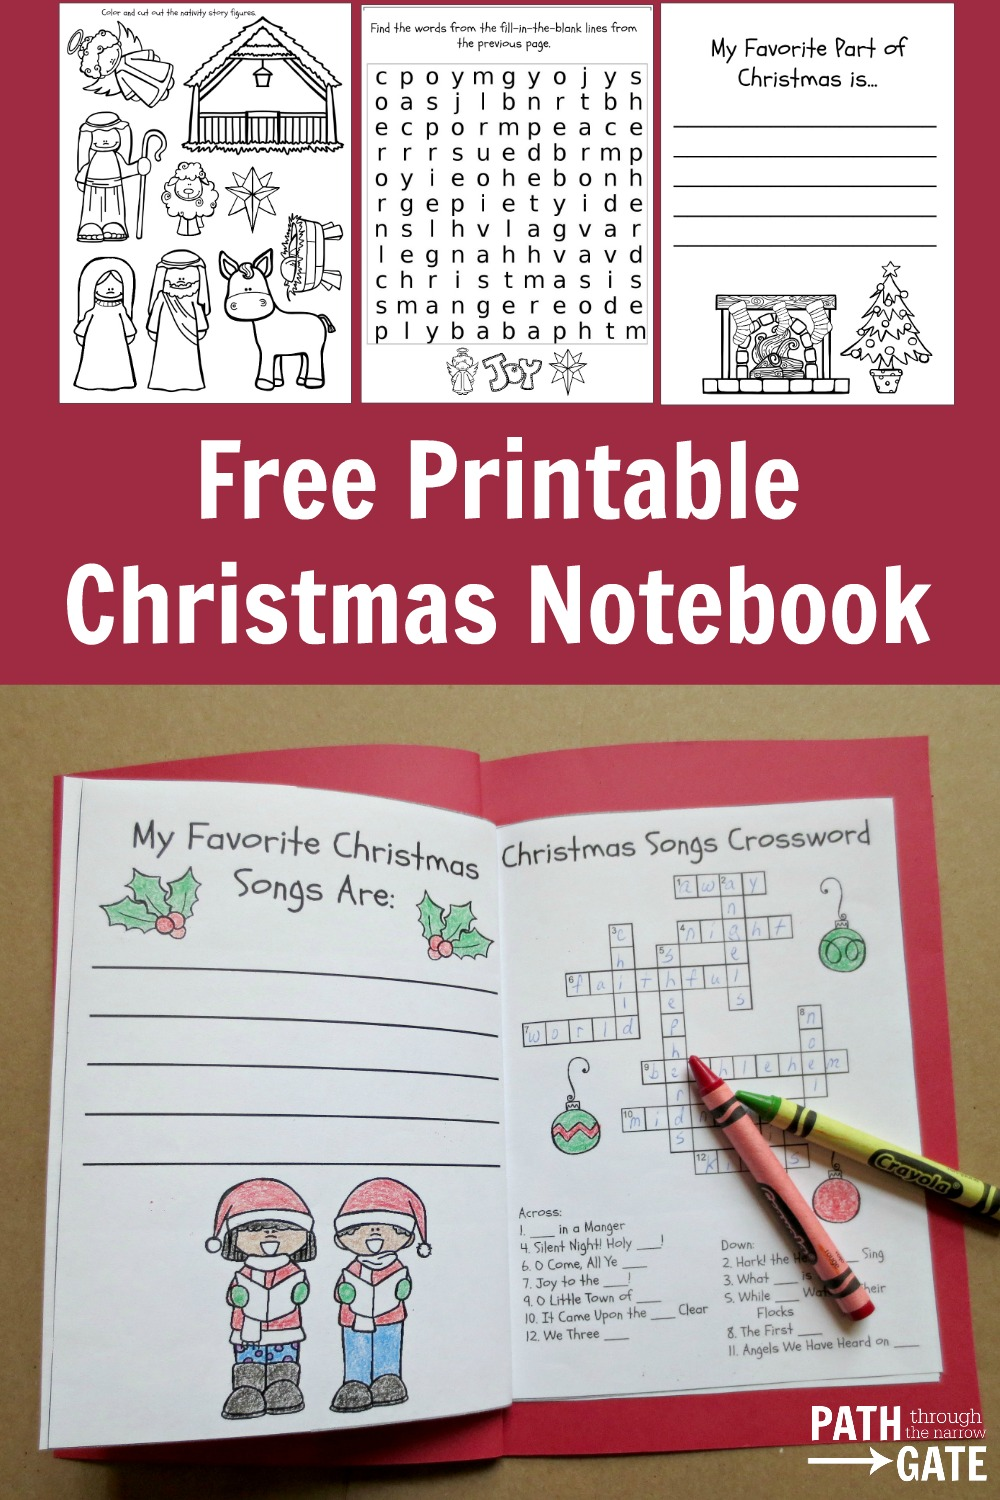 Keep your kids occupied in the car, at church, or at a relative's house with this delightful Christmas Notebook, filled with word puzzle, coloring pictures, and notebook pages.